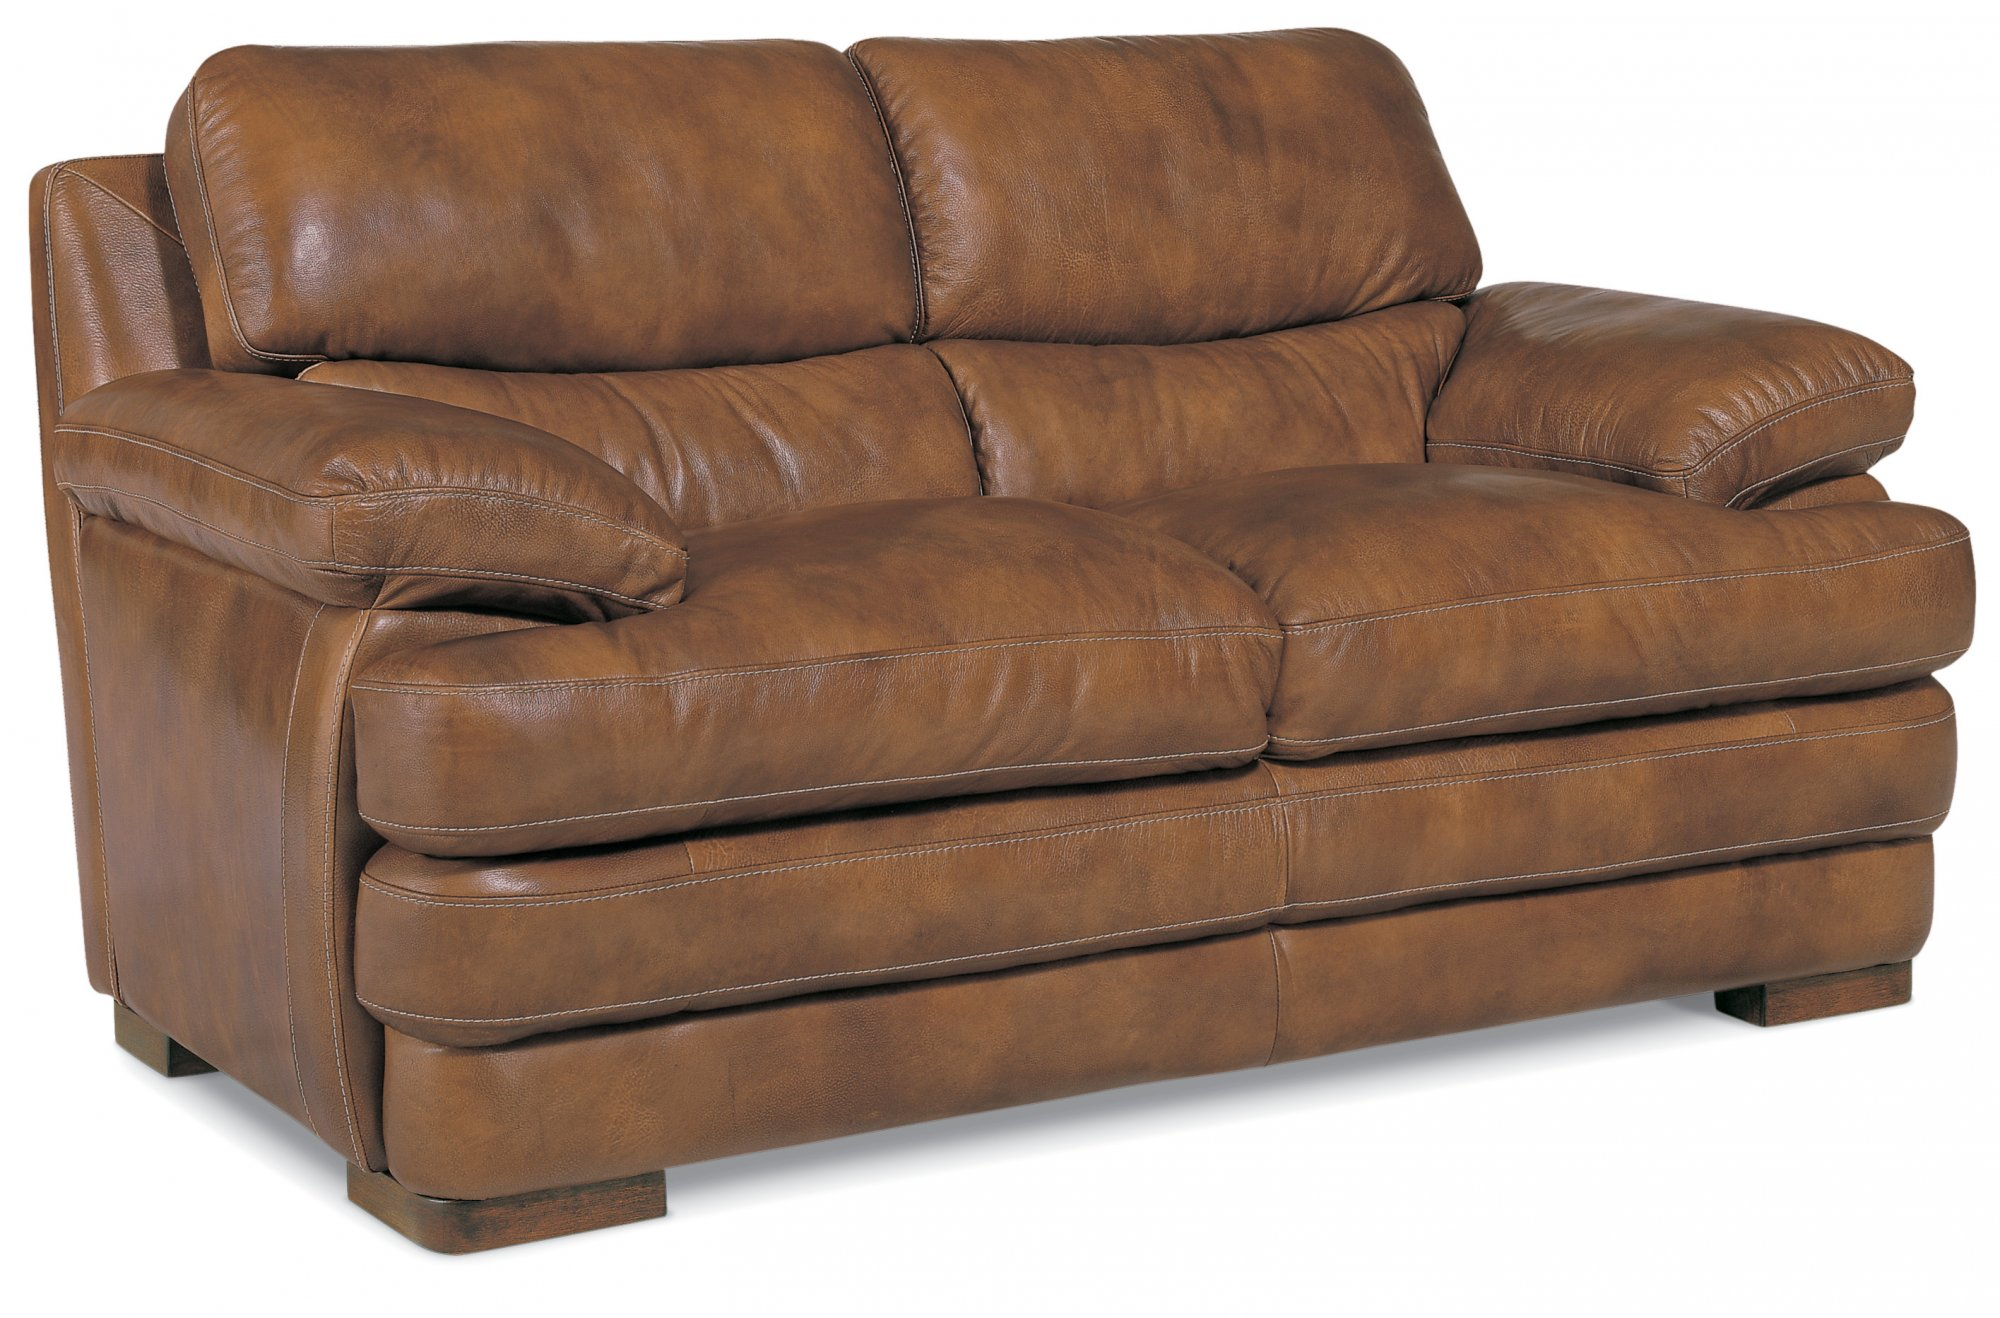 80 Inch Couch Leather Furniture Expo Napa Leather Sofa Brompton